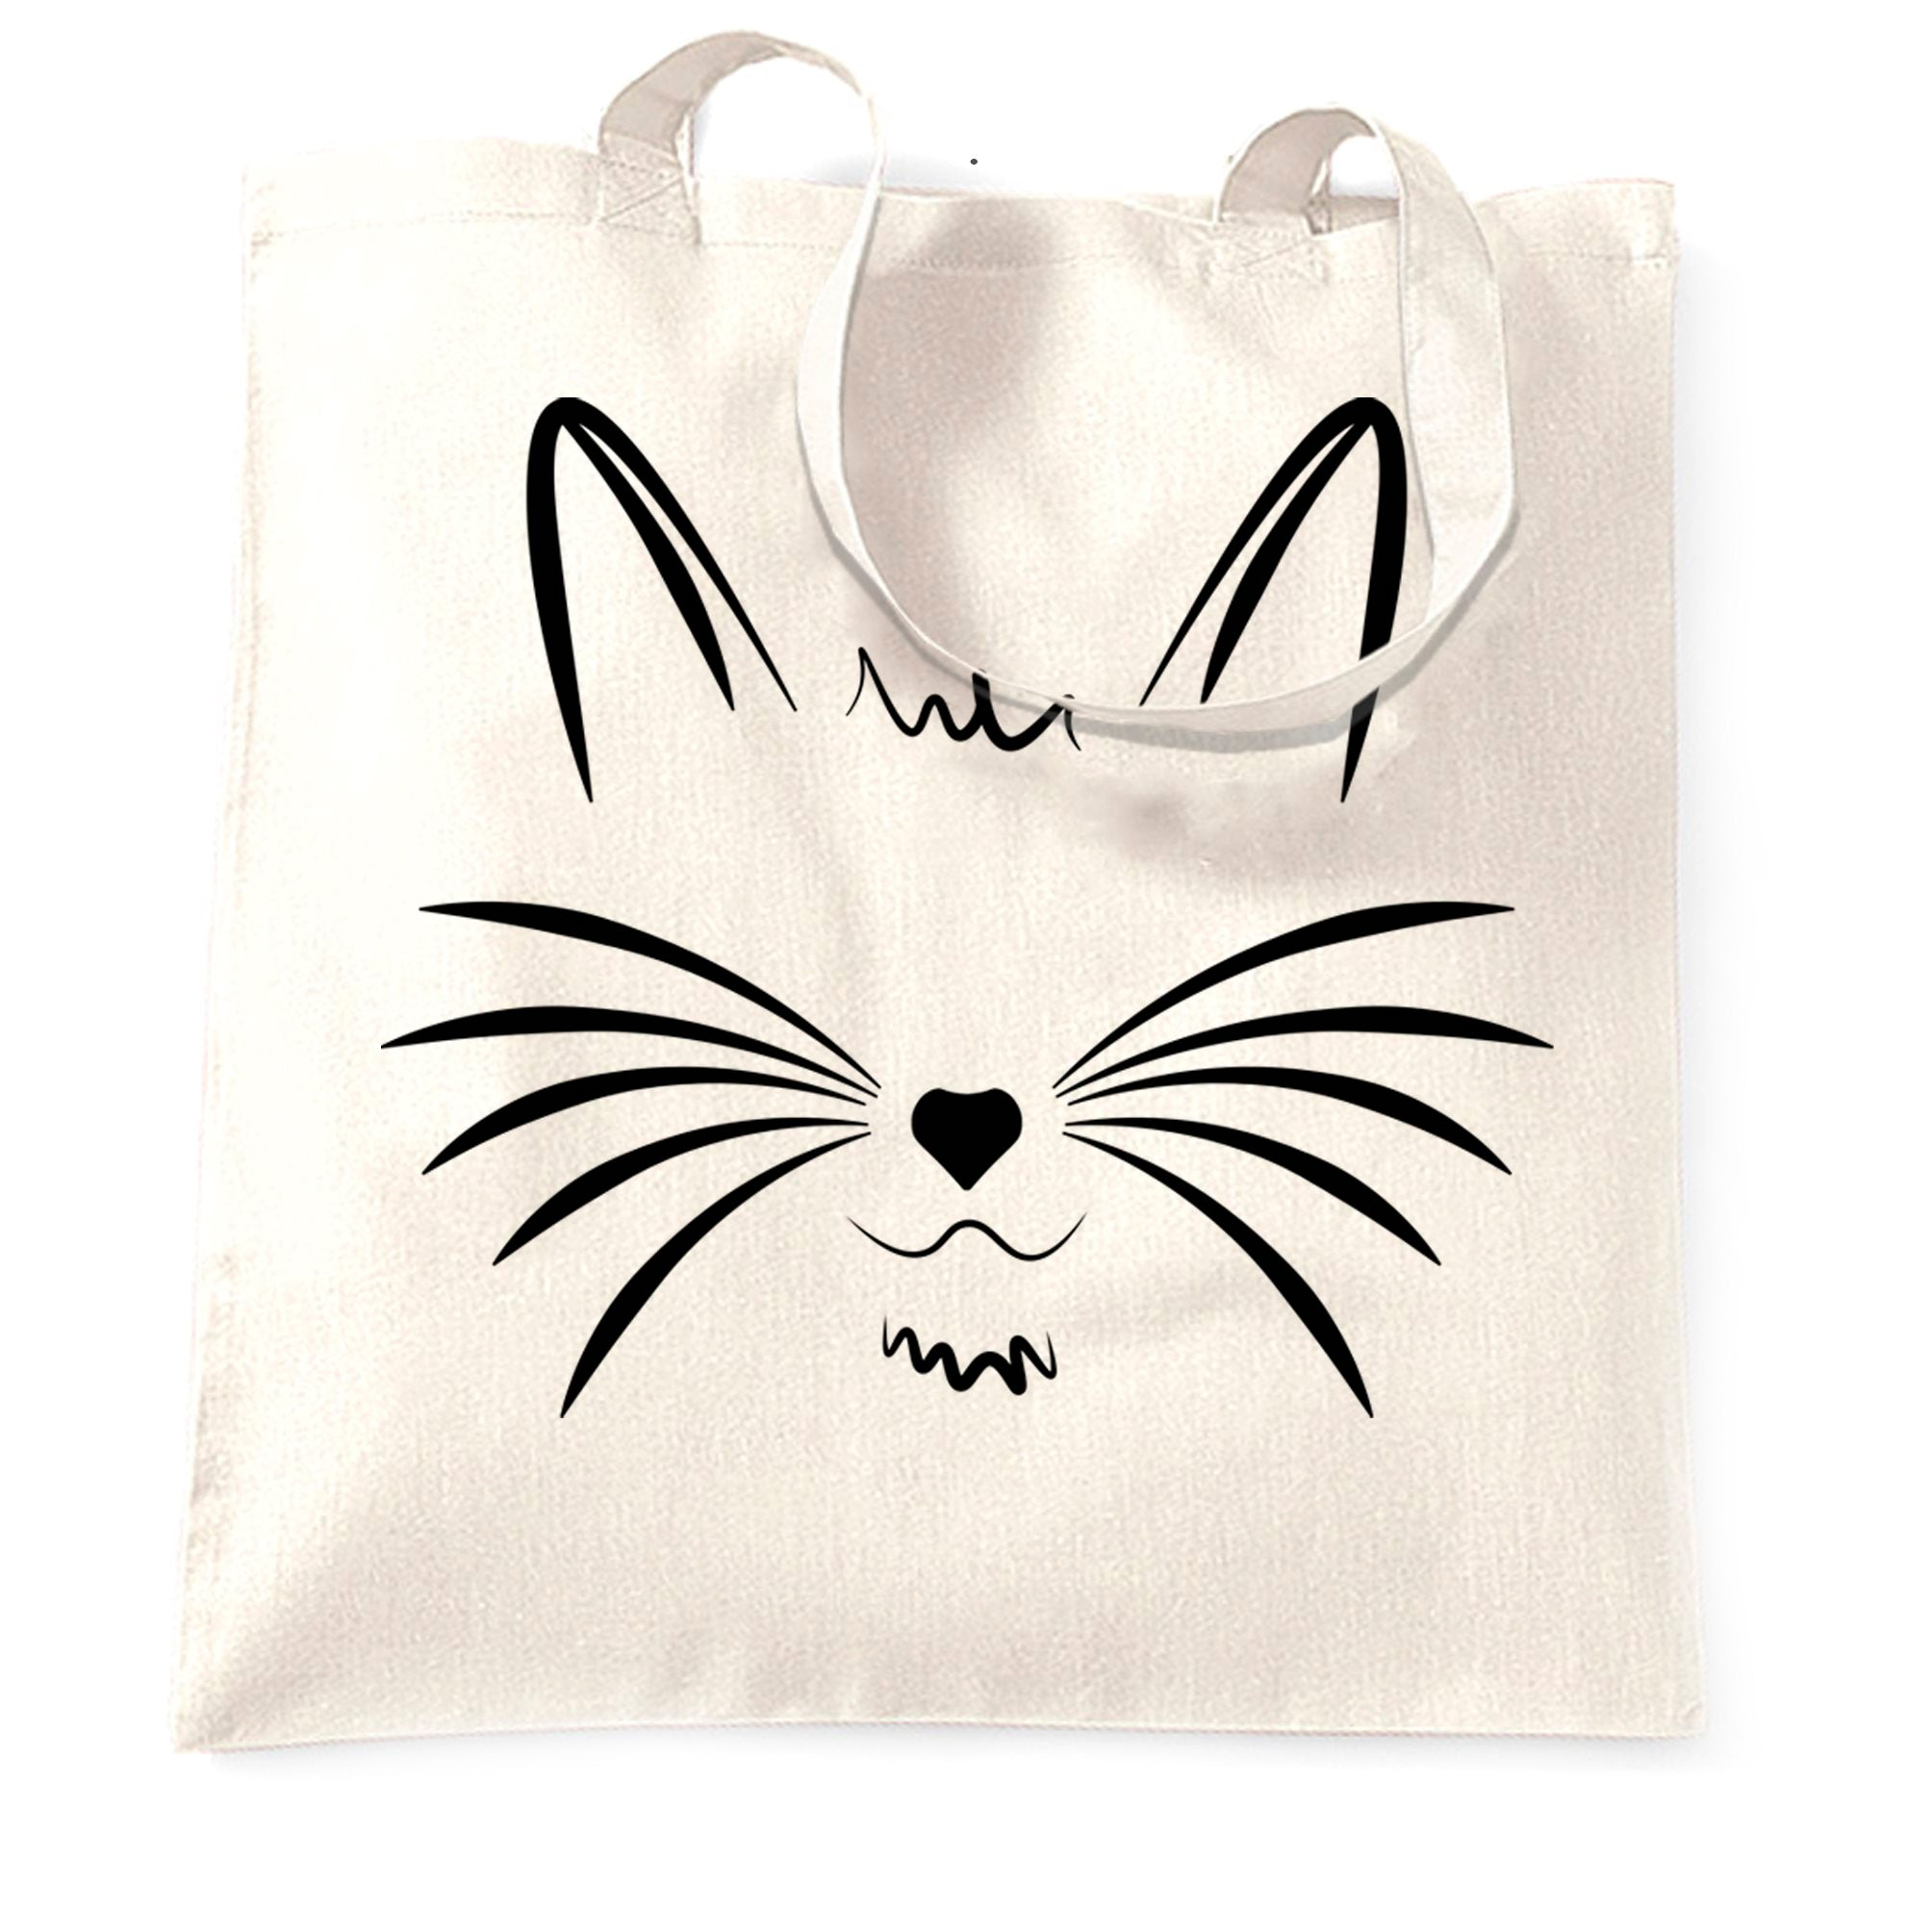 I Love Cats Tote Bag Face with Heart Nose